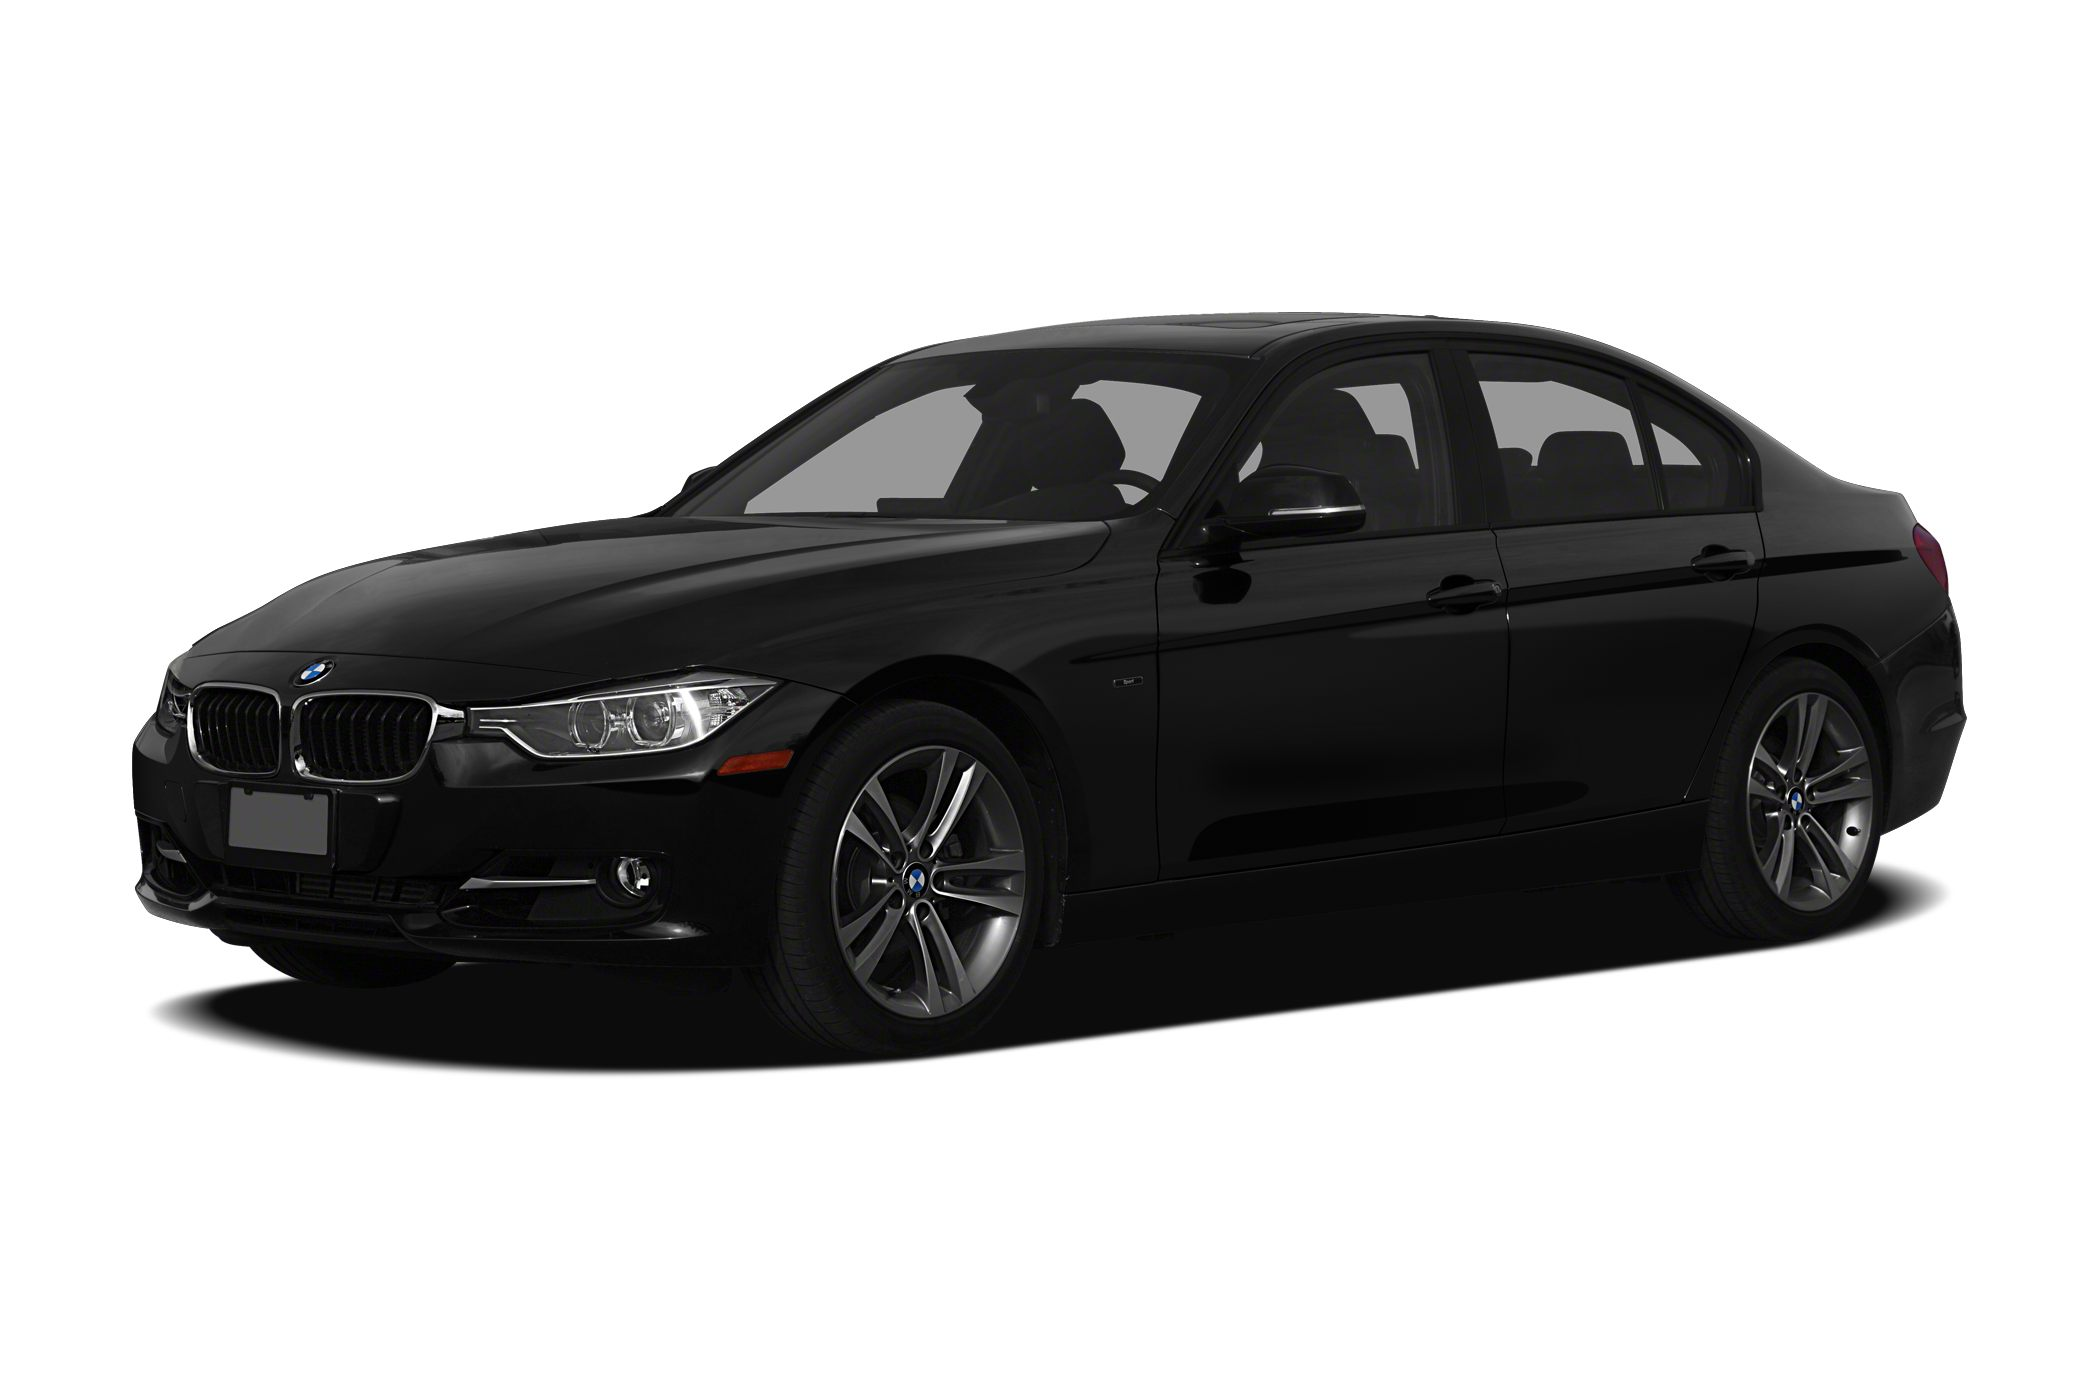 2012 BMW 328 I Convertible for sale in Flemington for $37,985 with 3,416 miles